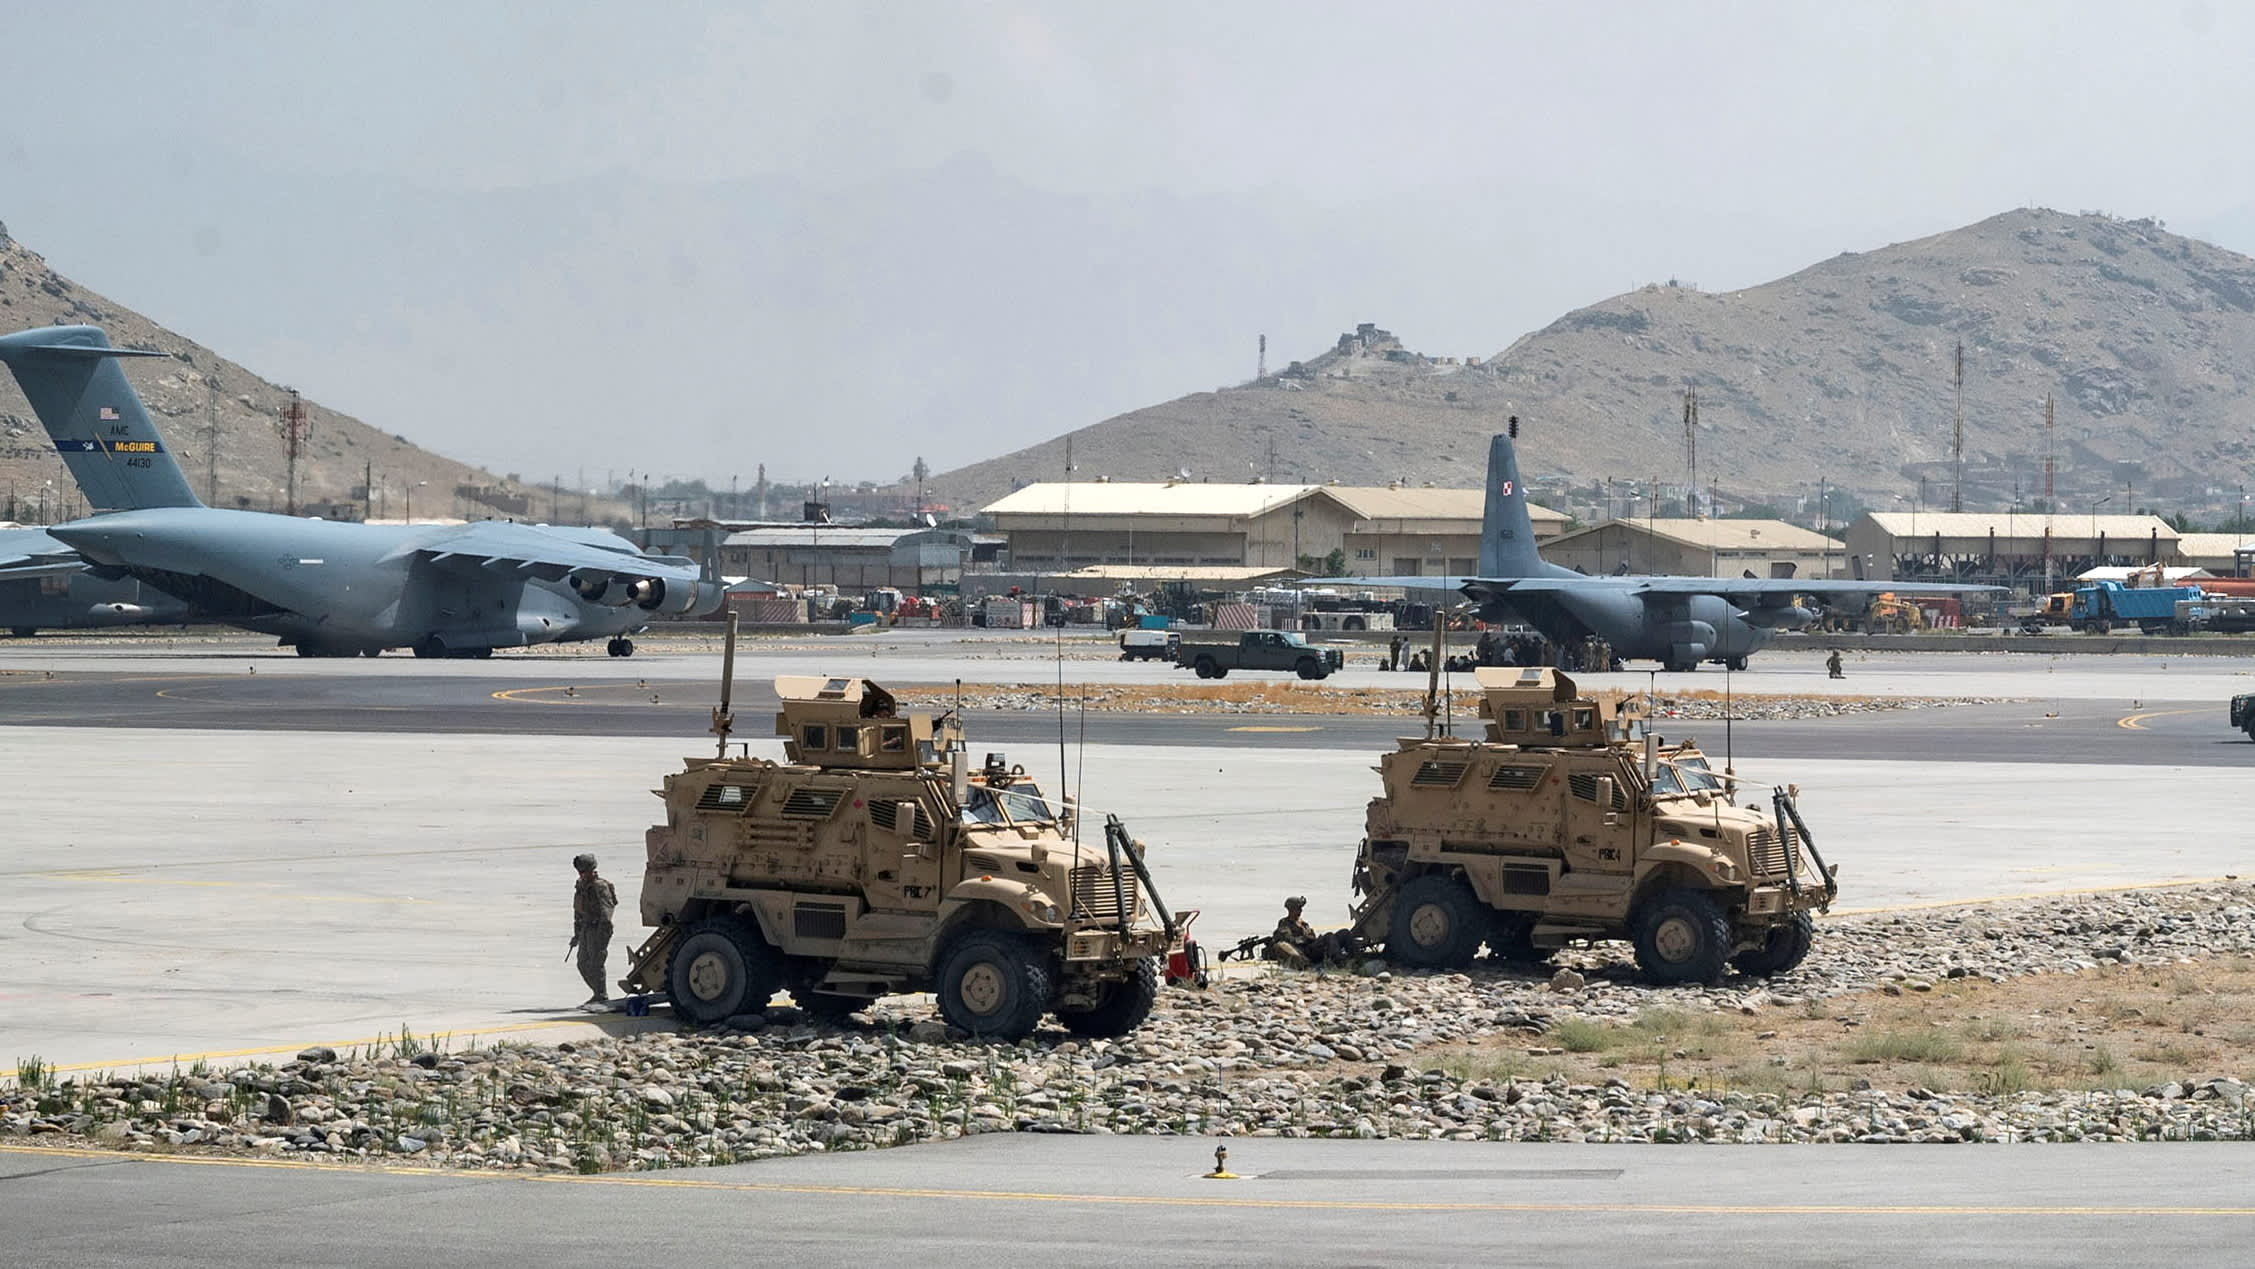 106930482-16293874992021-08-19t153626z_1232404442_rc2f8p93ikuh_rtrmadp_0_afghanistan-conflict-usa-arms.jpeg?v=1629387540